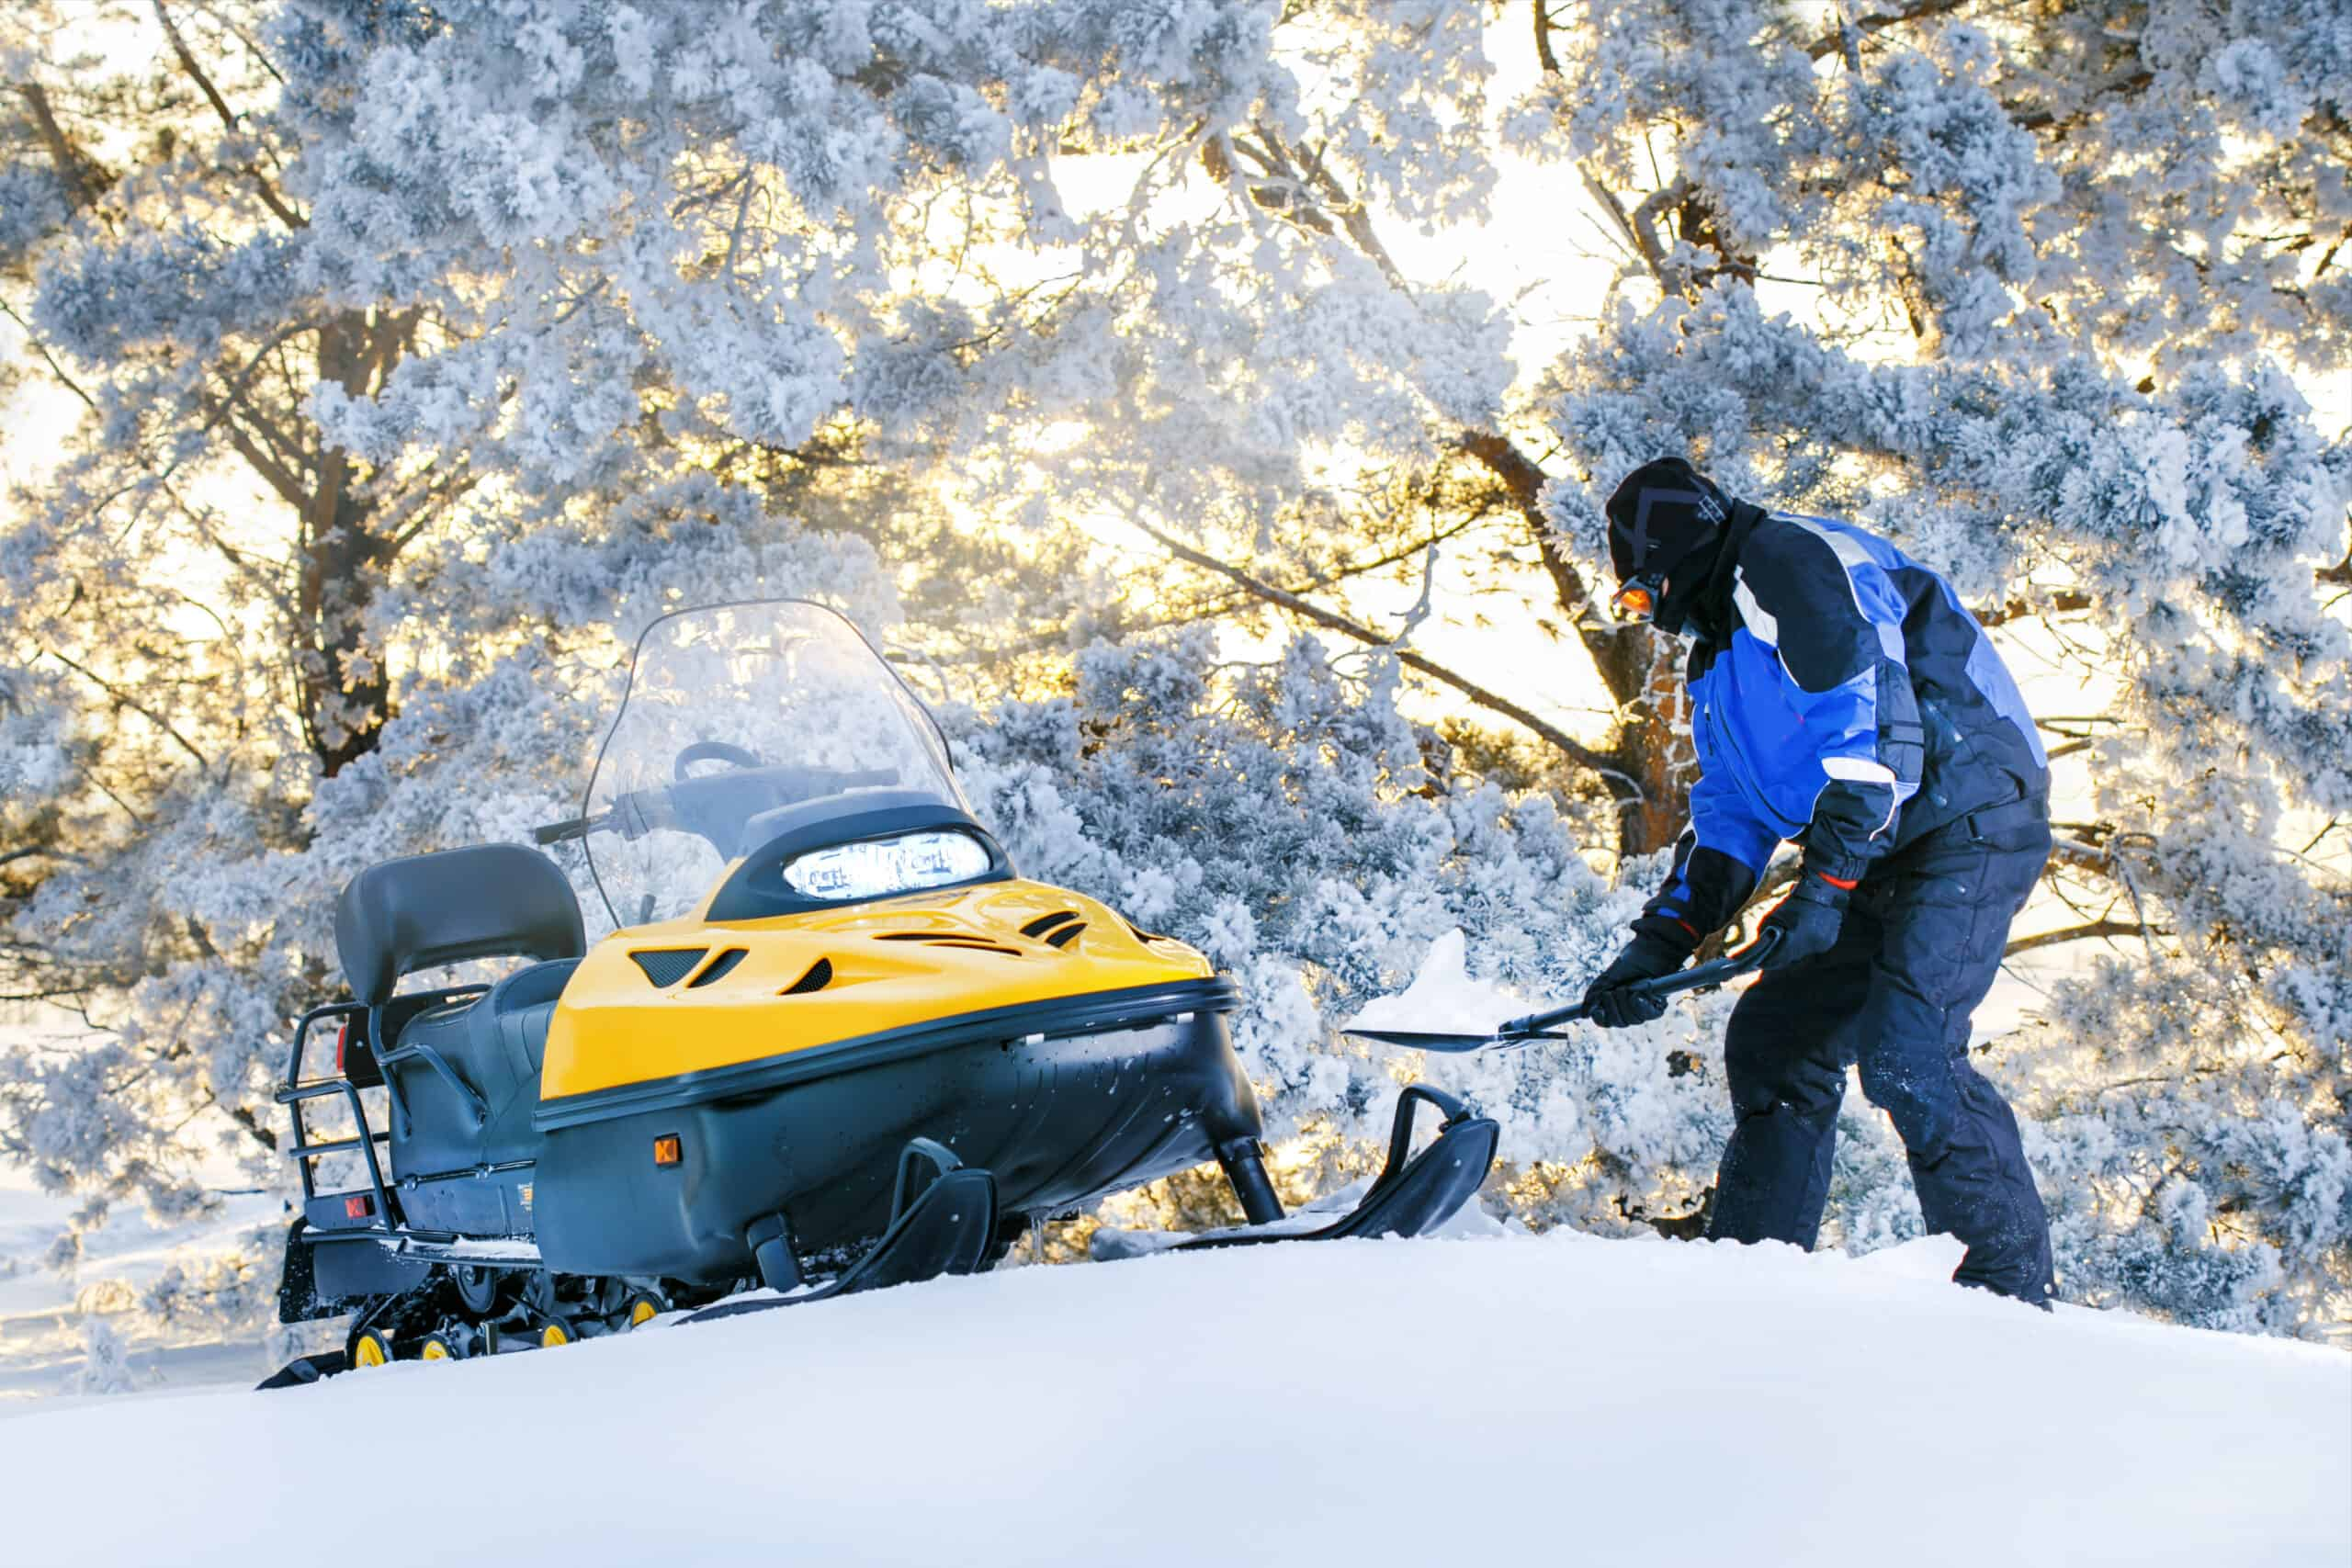 Man digging out Stuck Snowmobile